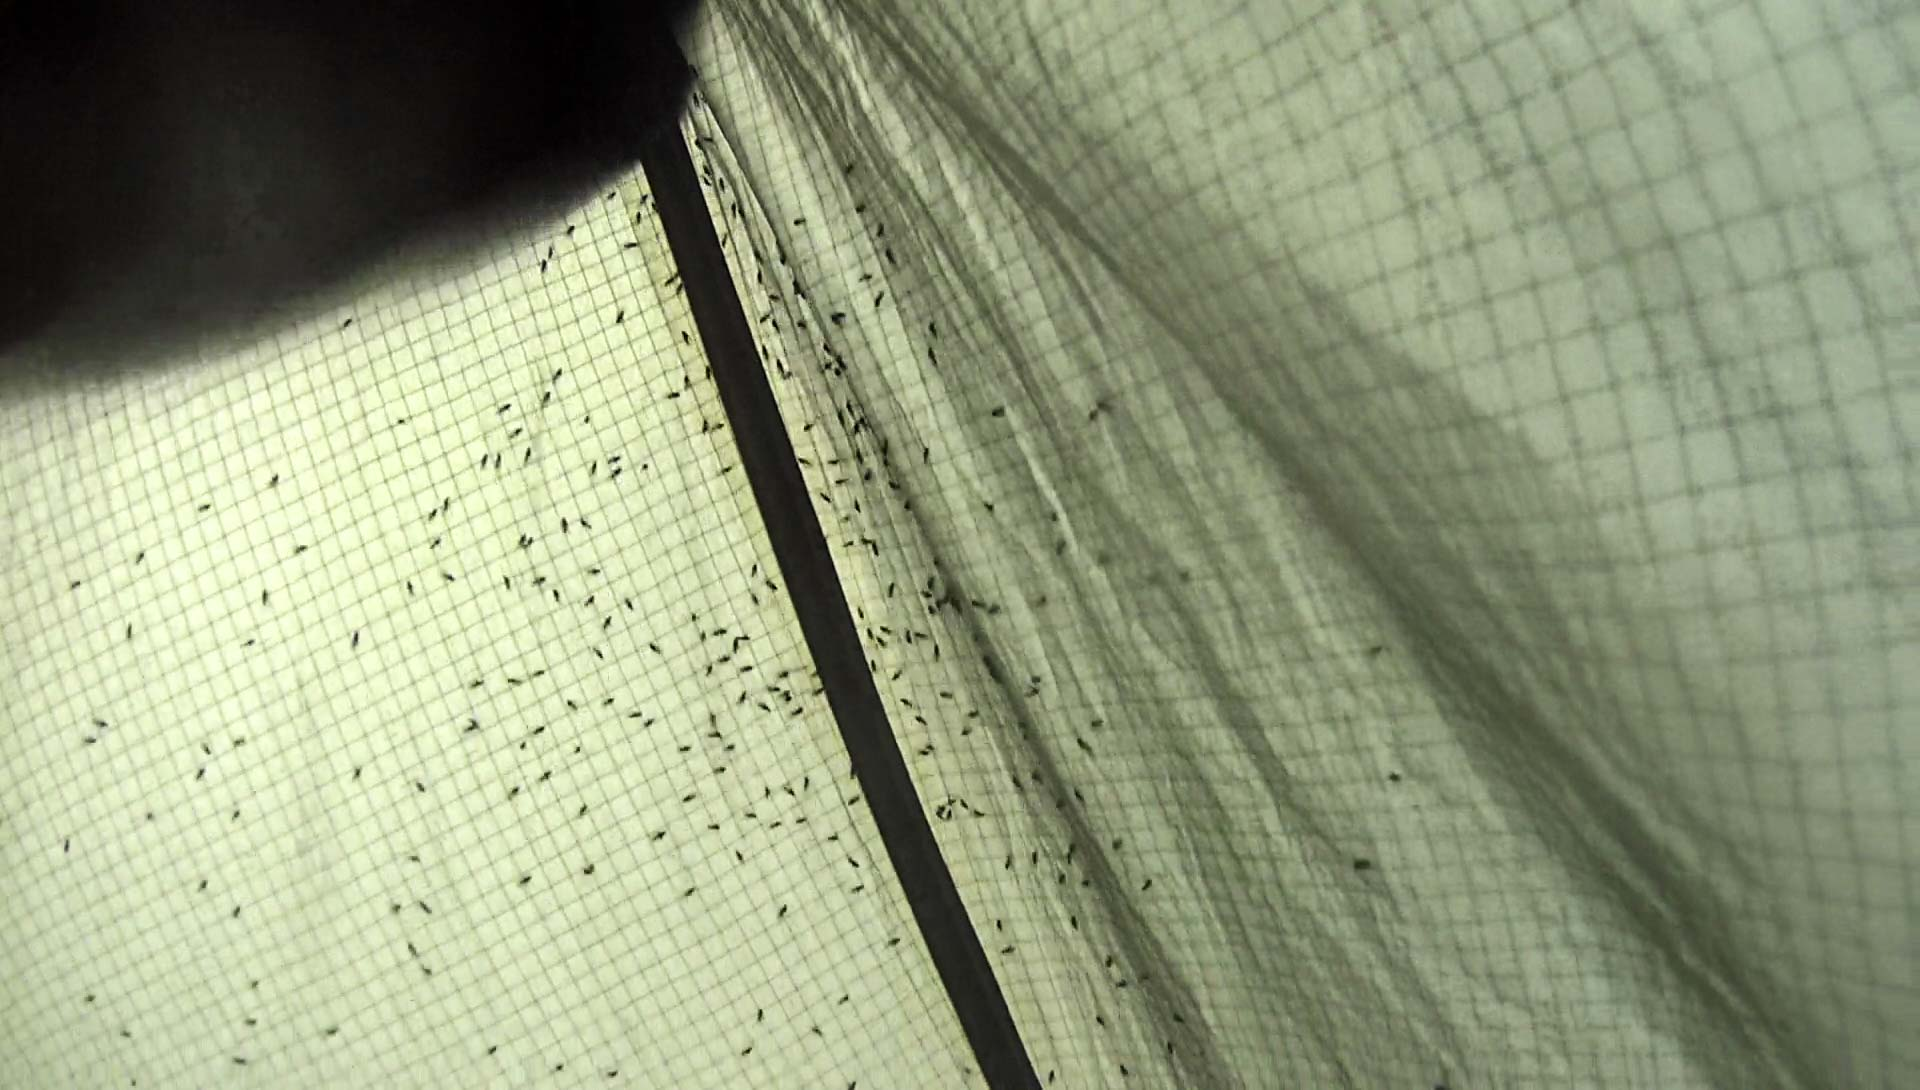 All my sandfly friends have come to visit